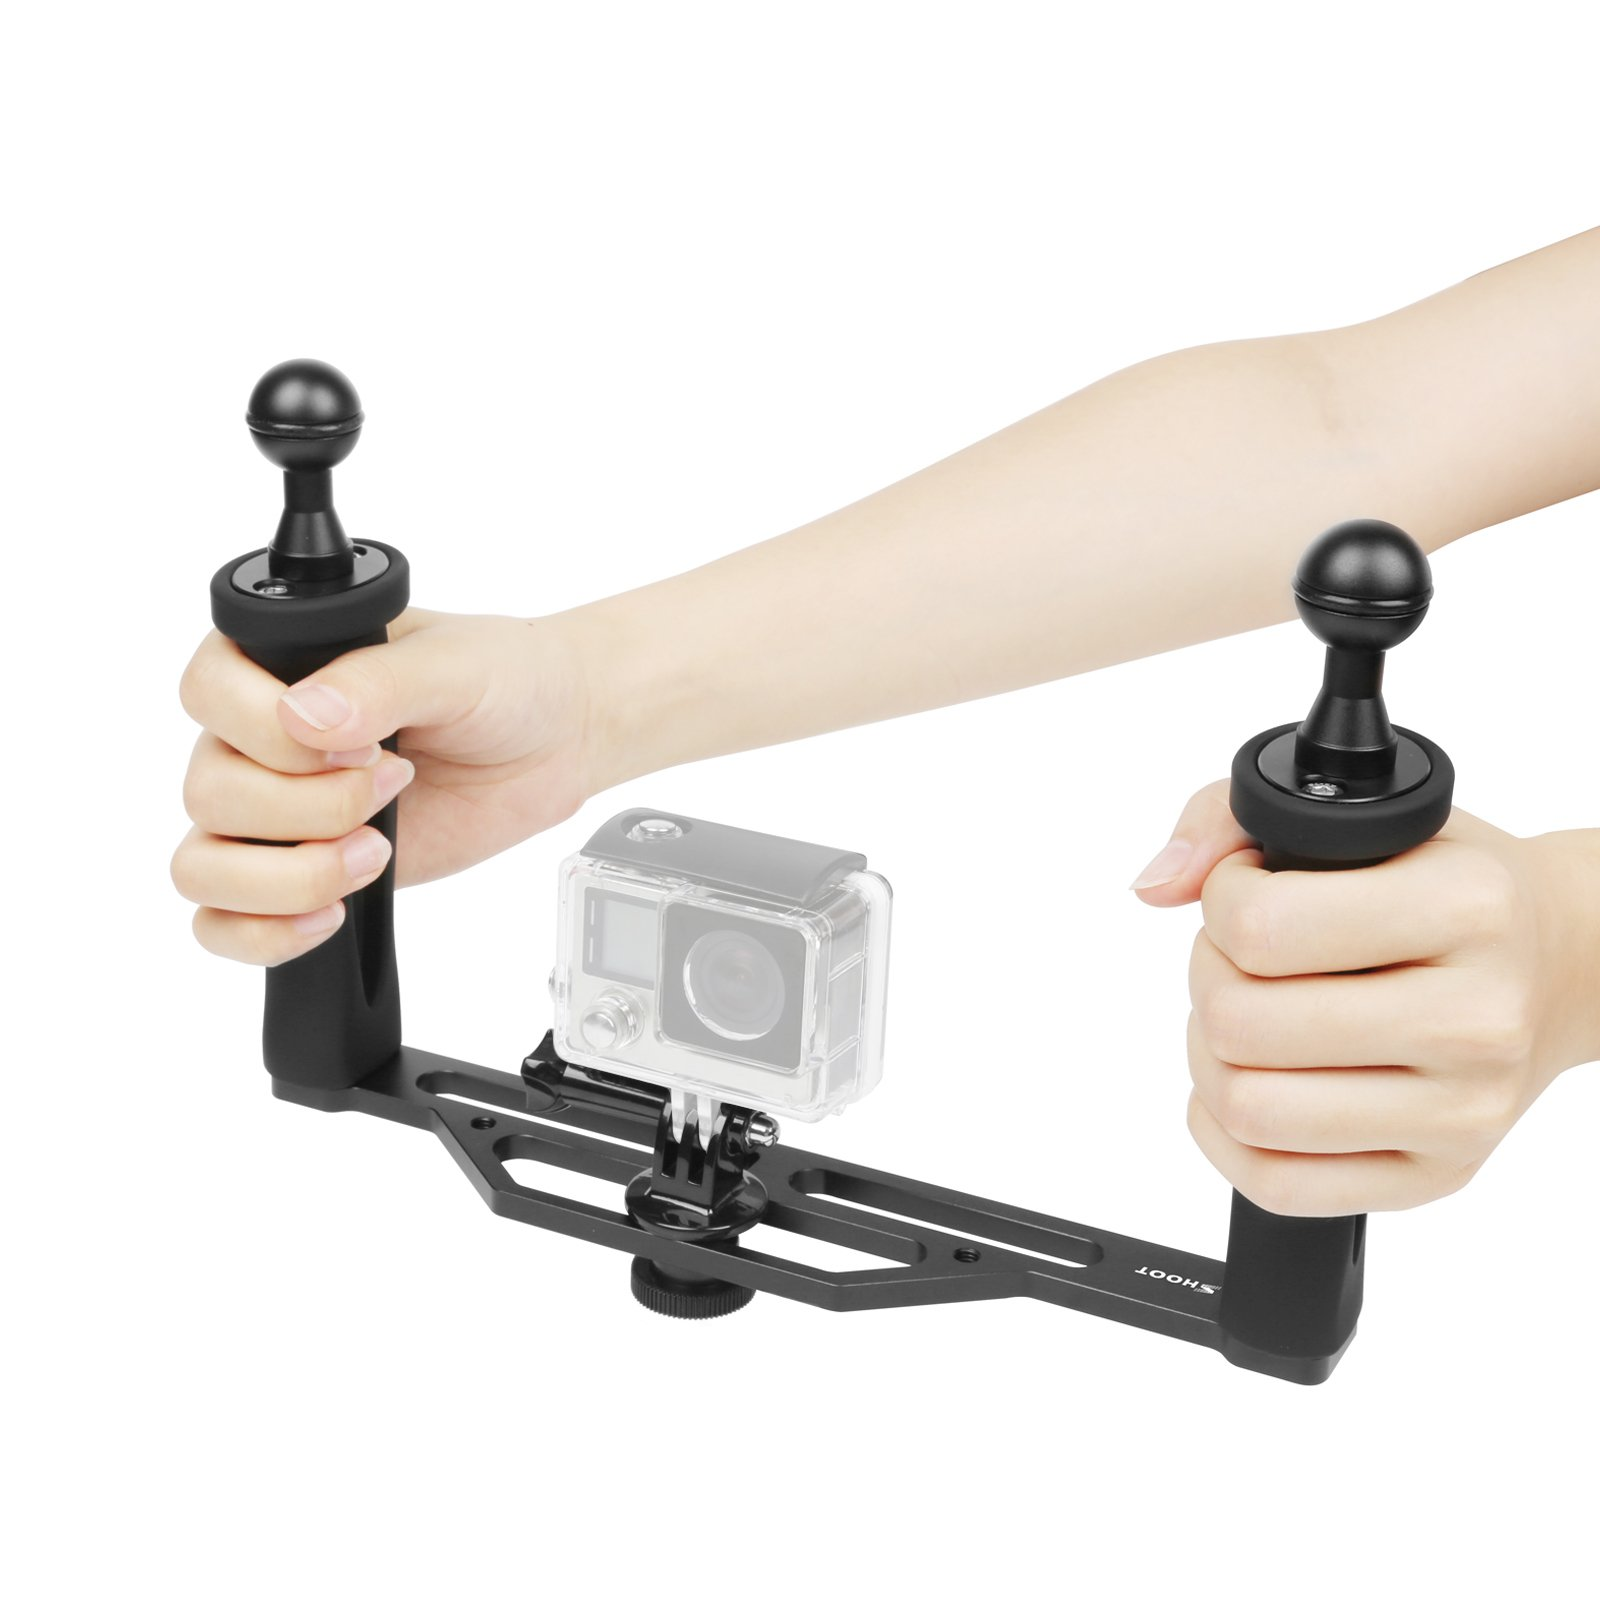 SHOOT Aluminium Alloy Handheld Stabilizer Tray Handle Grip for GoPro 6/5/4/3+/3 SJCAM and 6 inch Dome Port and All LED Video Light Camera Camcorder with 1/4 inch Screw Hole